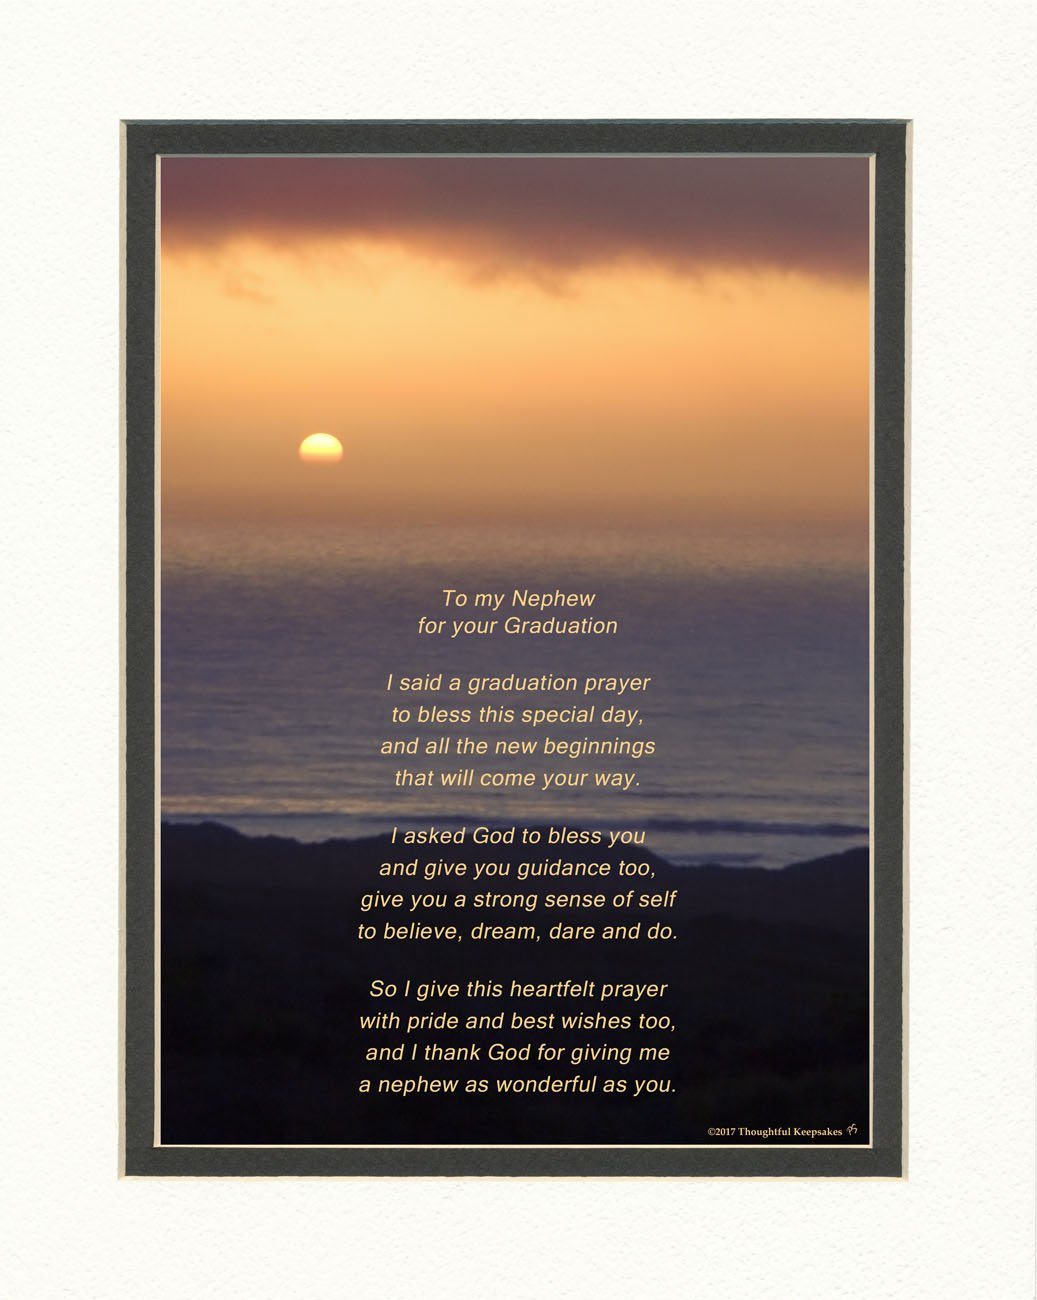 Nephew Graduation Gift with '' Nephew Graduation Prayer Poem'' Ocean Sunset Photo, 8x10 Double Matted. Special Keepsake Graduation Gifts for Nephew. Unique College and High School Grad Gifts.